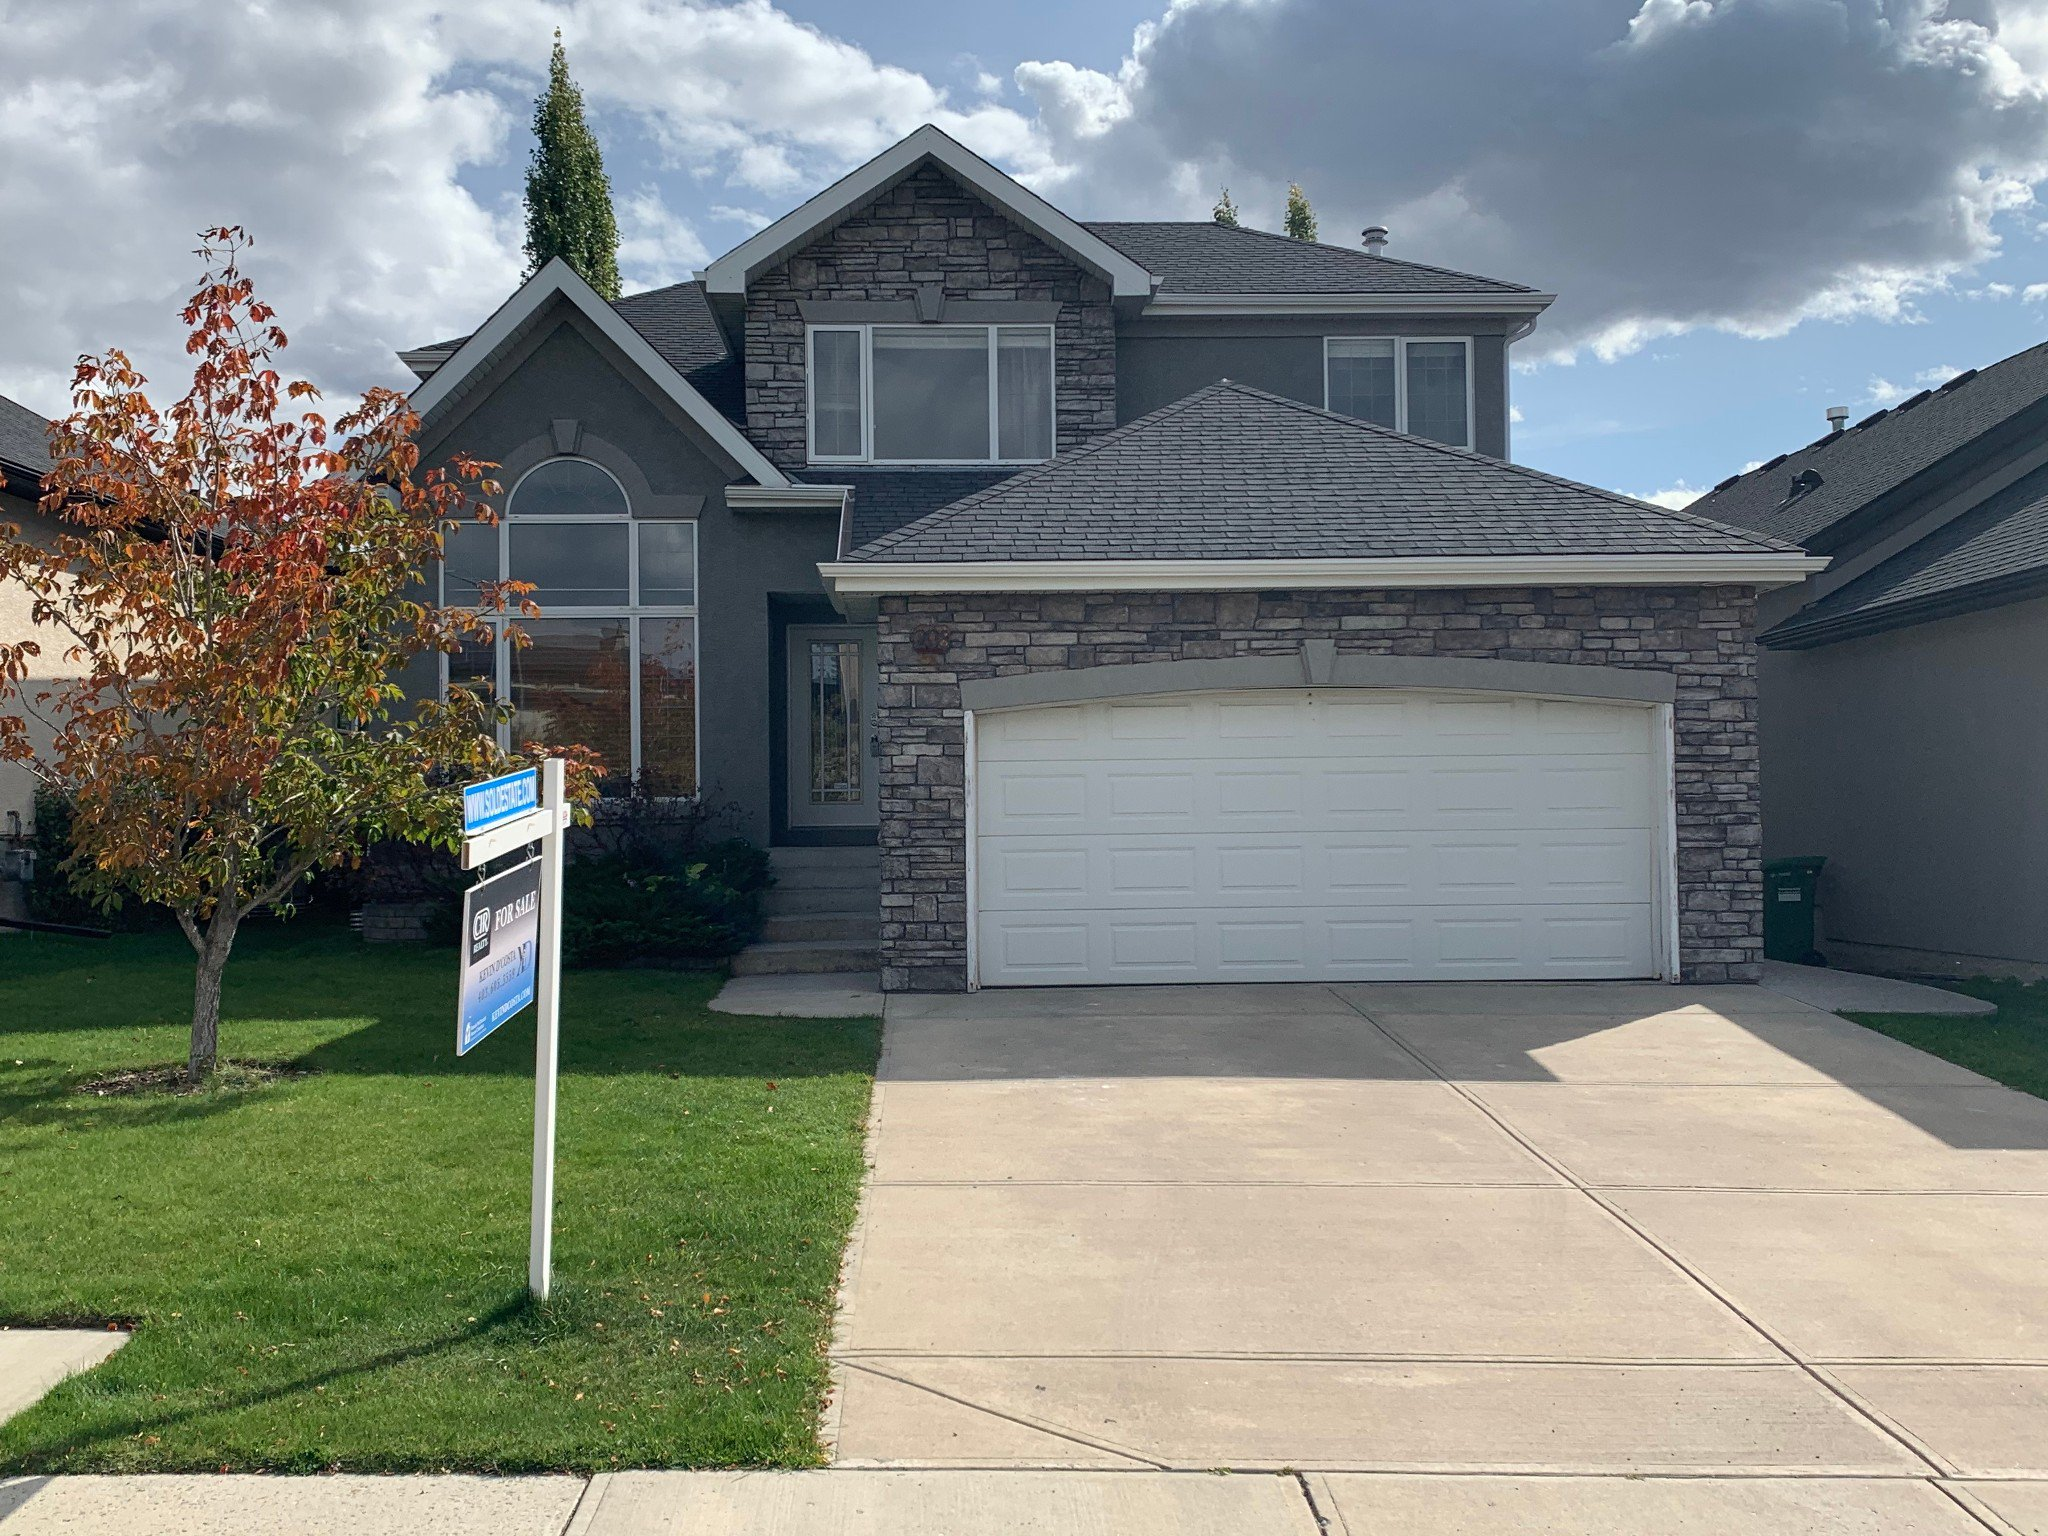 Main Photo: 208 PANORAMA HILLS Way NW in Calgary: Panorama Hills House for sale : MLS®# C4258784